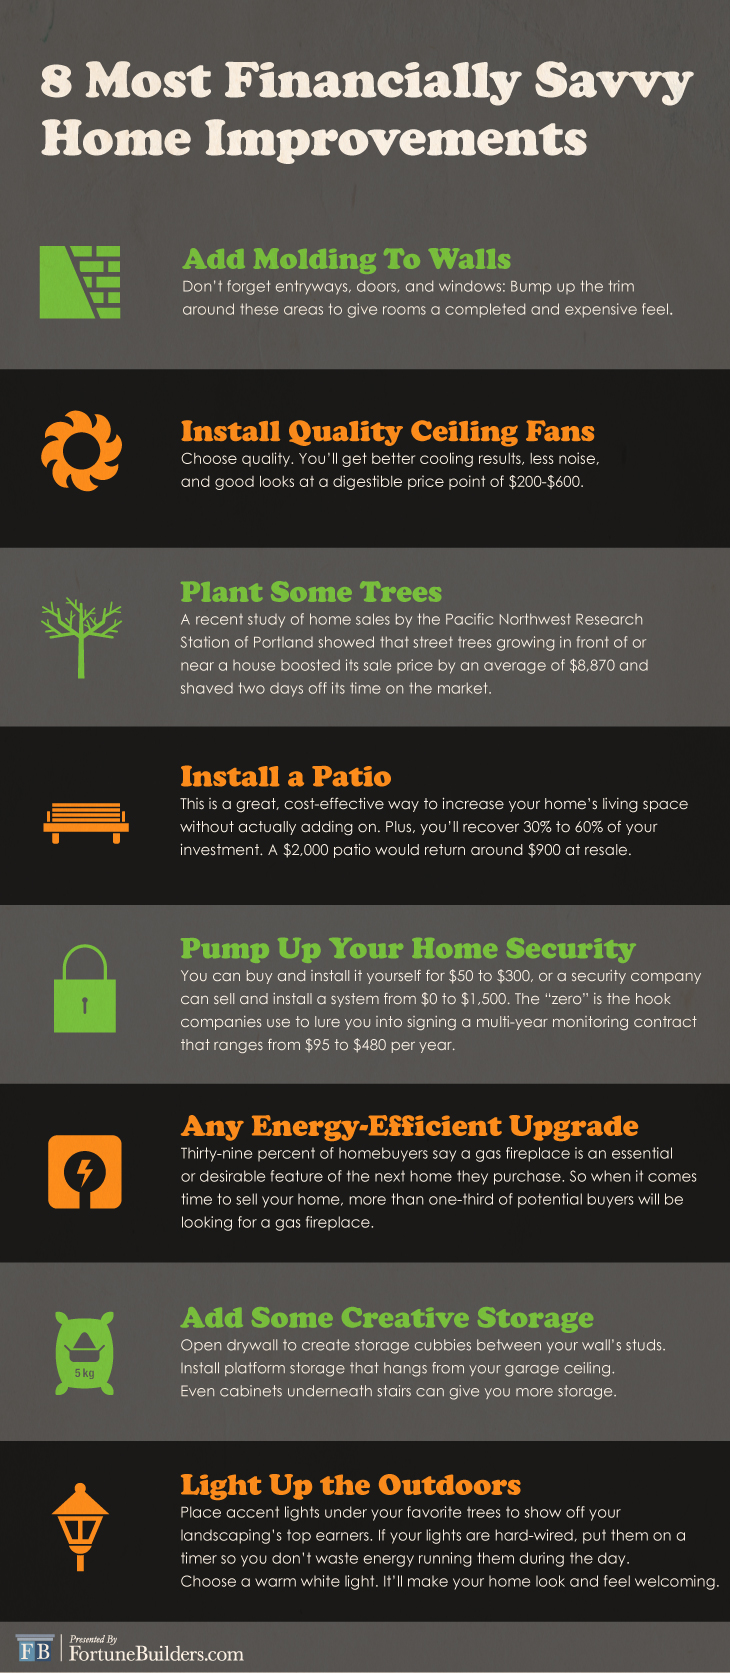 Financially savvy home improvement checklist